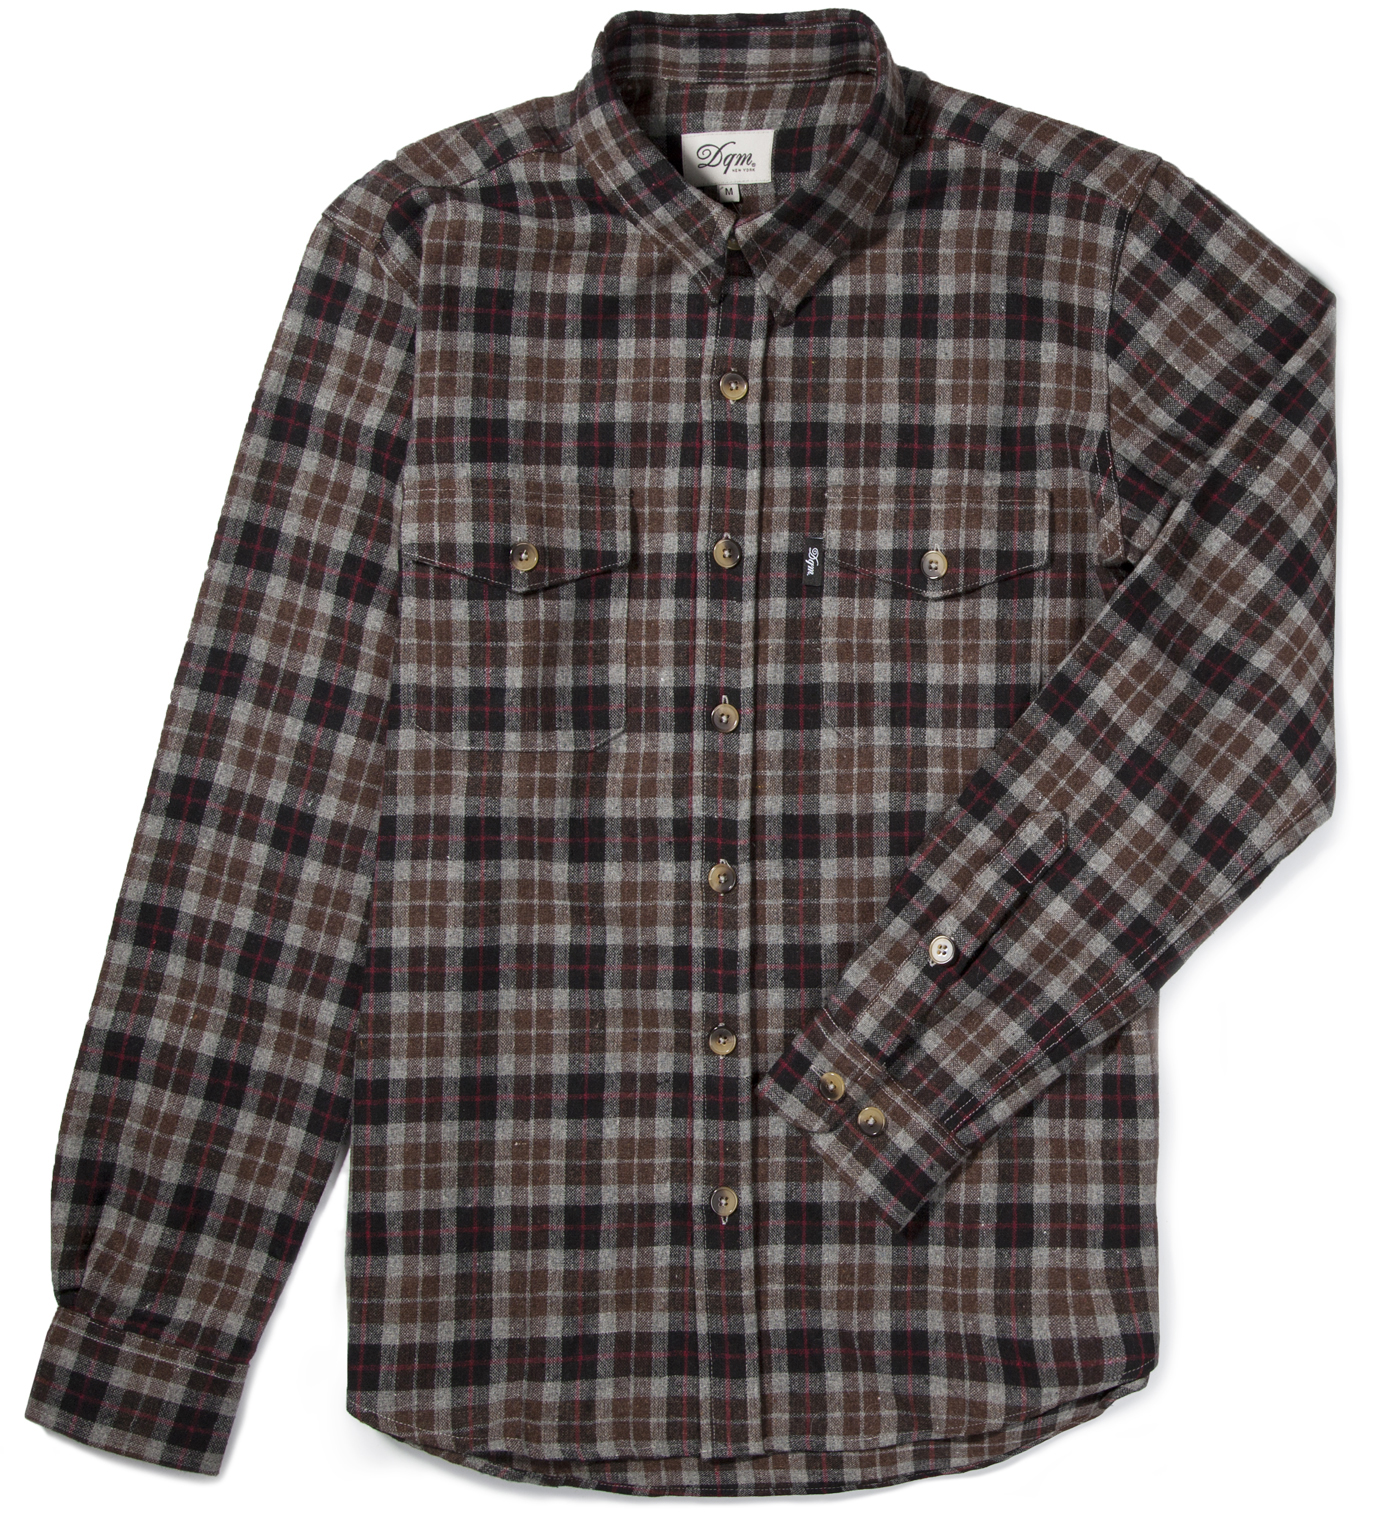 Dqm brown black fishkill plaid wool shirt hbx for Brown and black plaid shirt